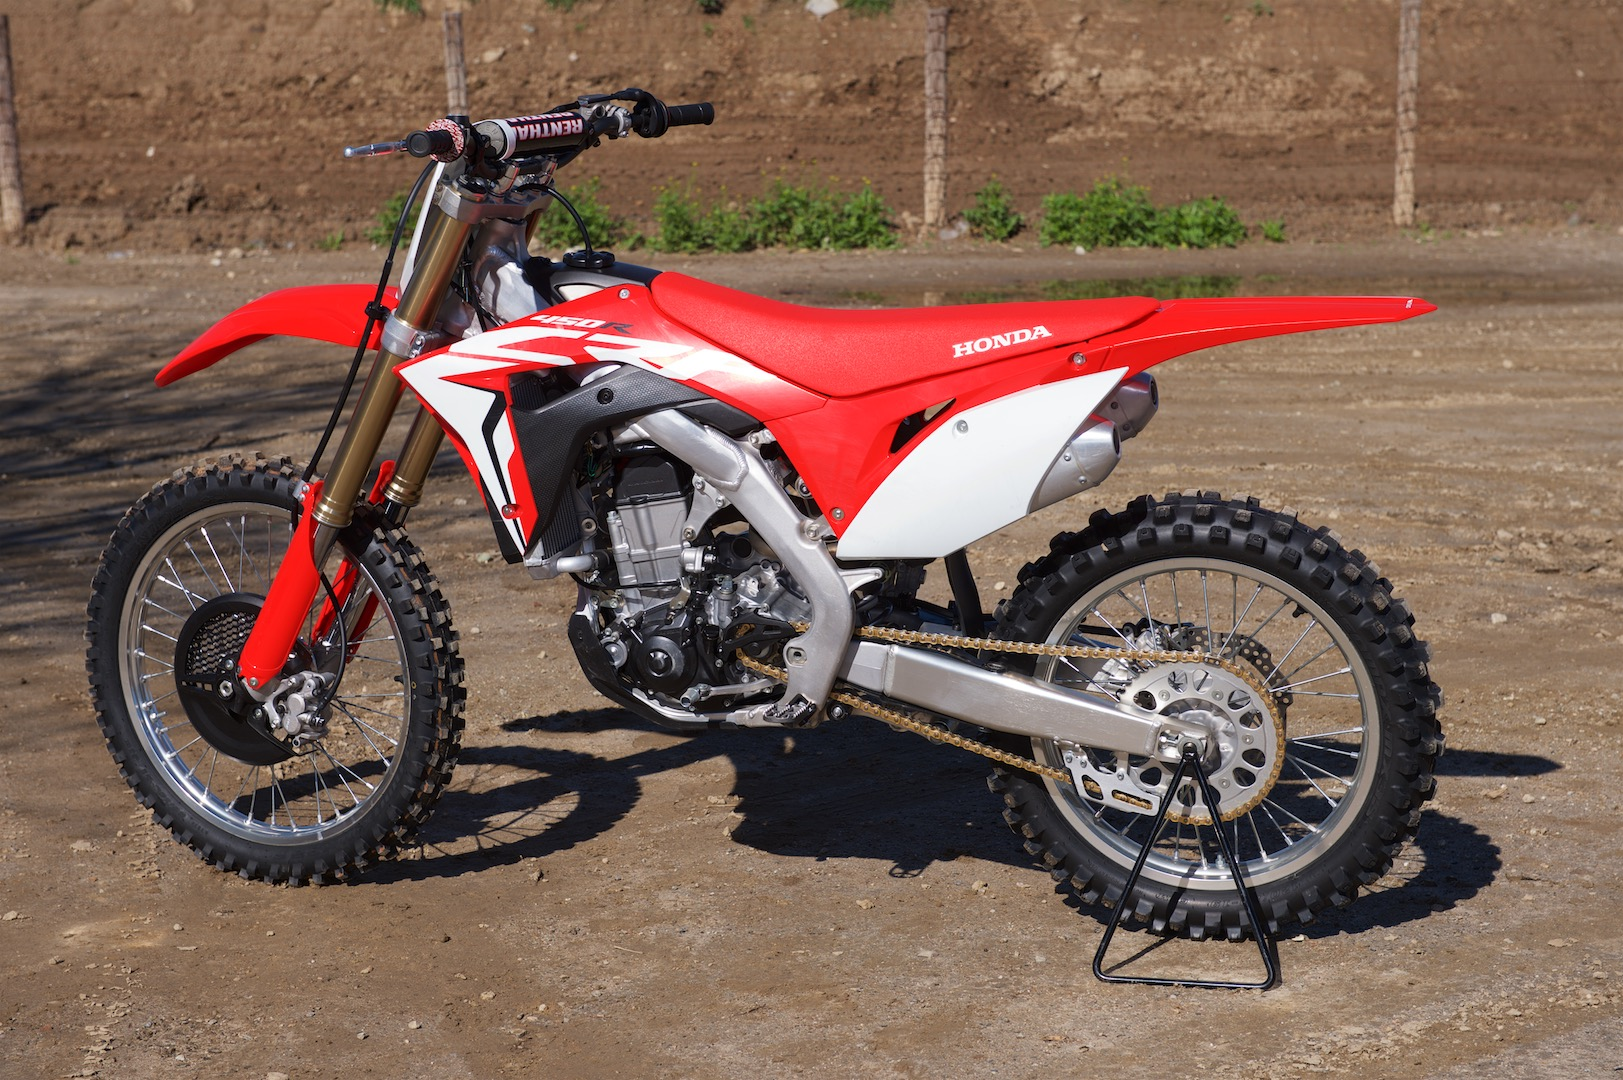 Honda Crf450r Photo And Video Review Comments